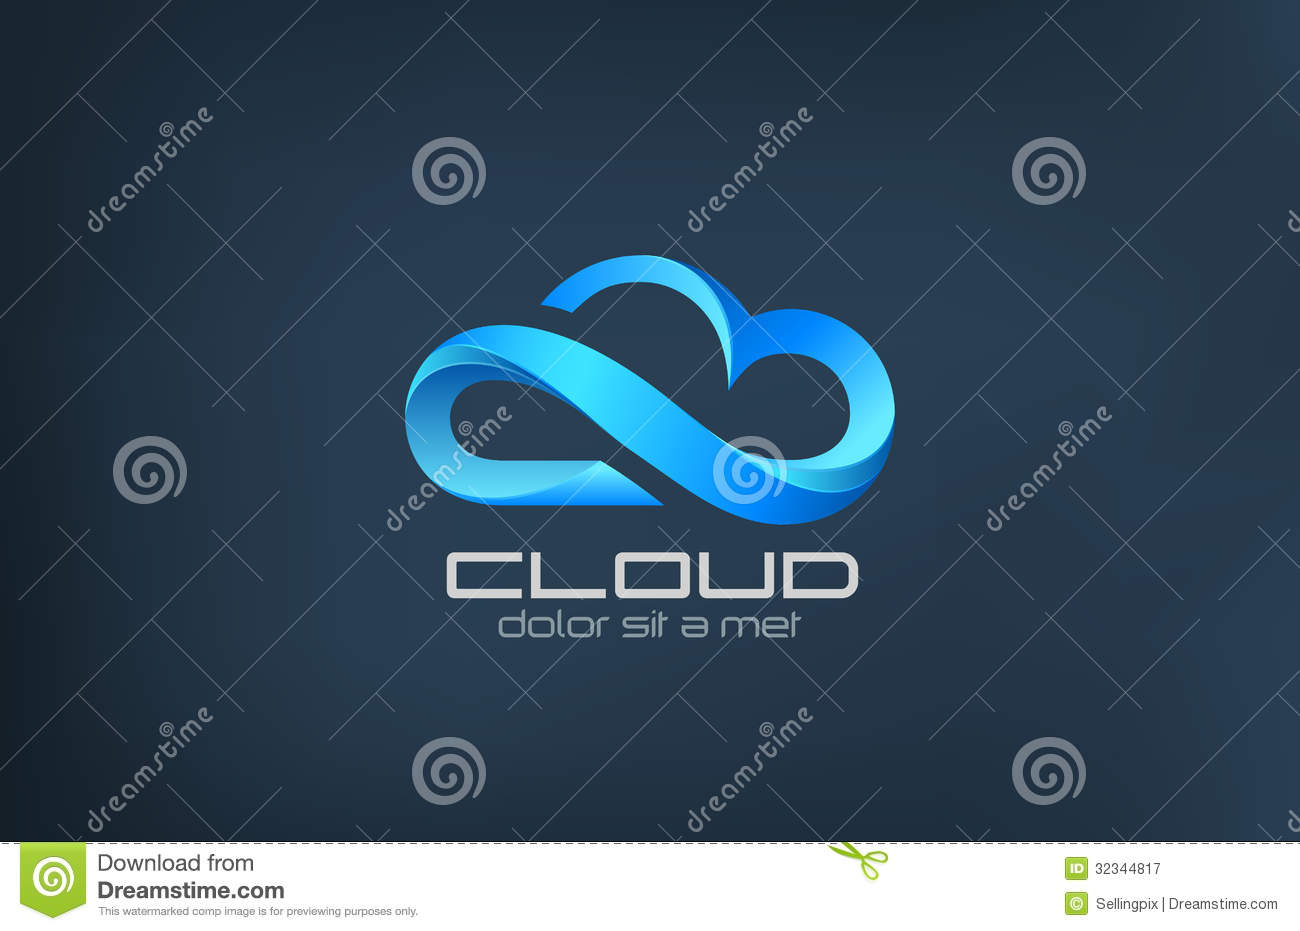 cloud computing icon vector logo design template creative business concept processing clouds service technology idea 32344817 - Le travail spéculatif et les logos en solde, oui ? Non ?